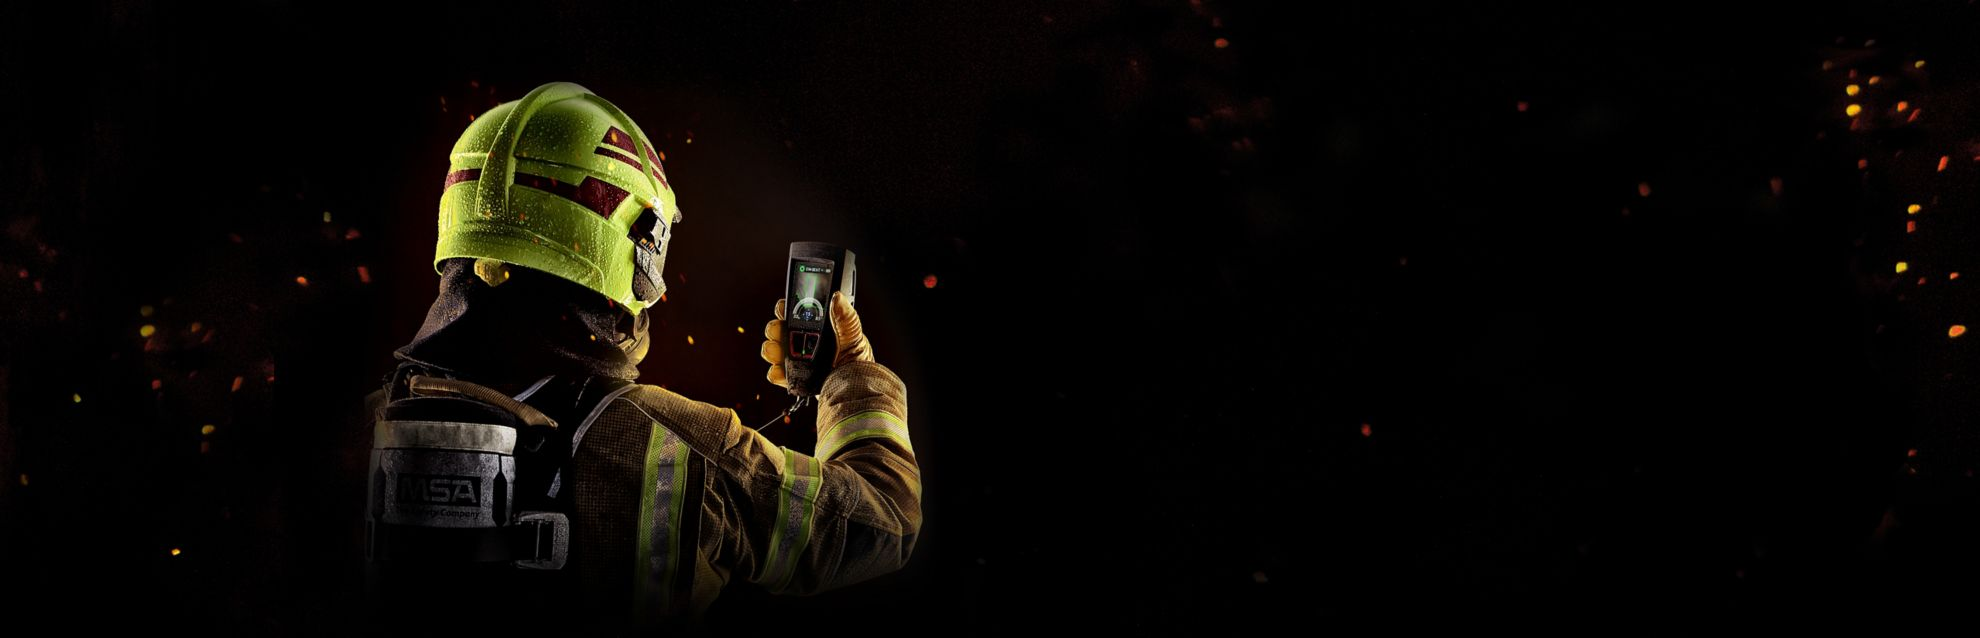 A firefighter holding Lunar, looking at the screen.